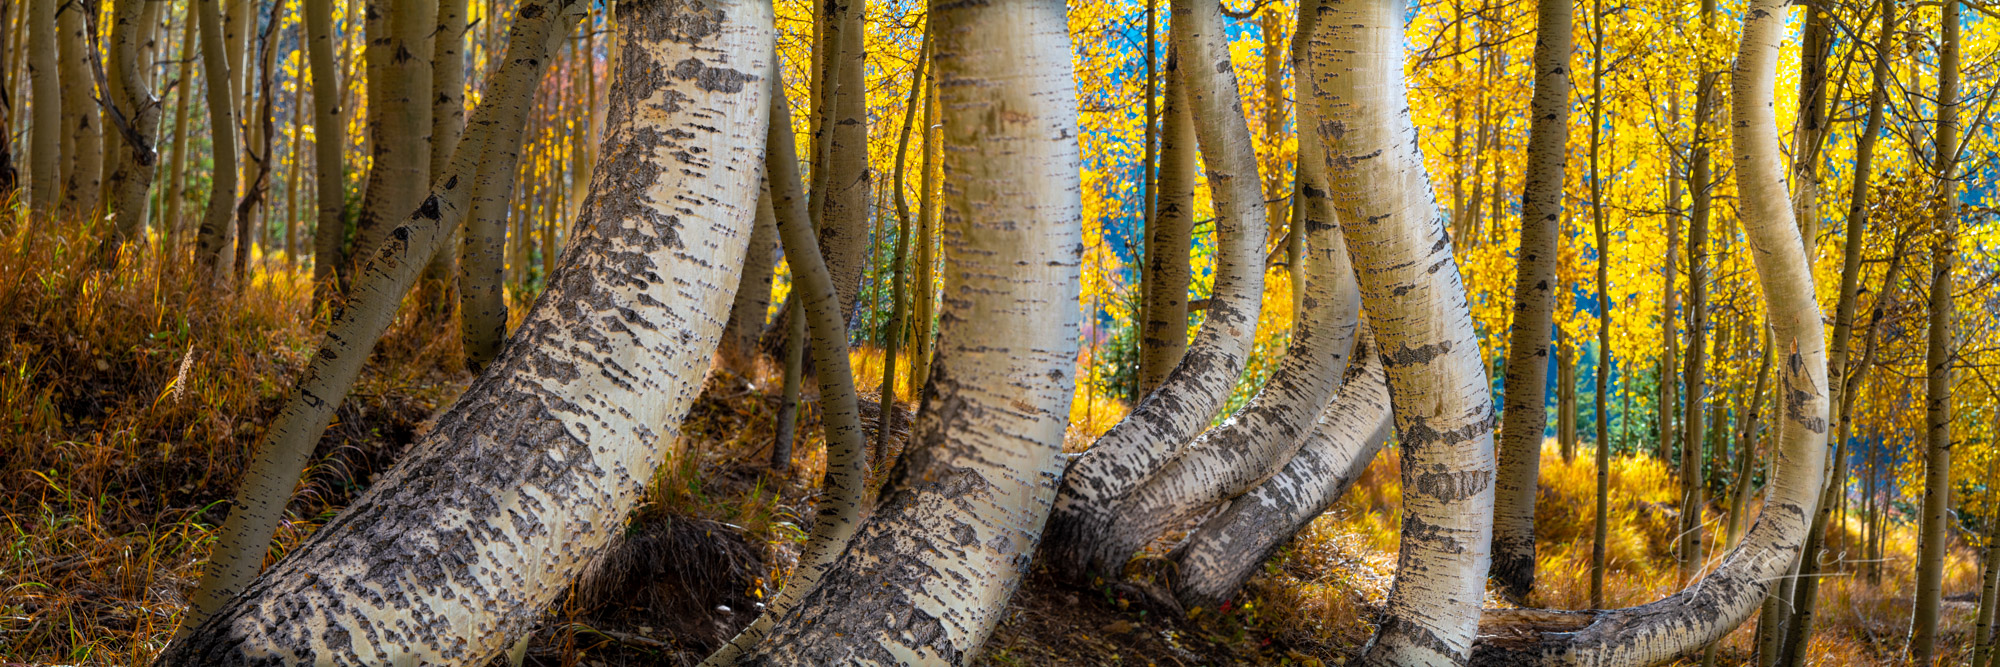 A Colorado Fall Color Photography Print of twisted aspen trees taken during the peak of Autumn Color in southeast Colorado. A...